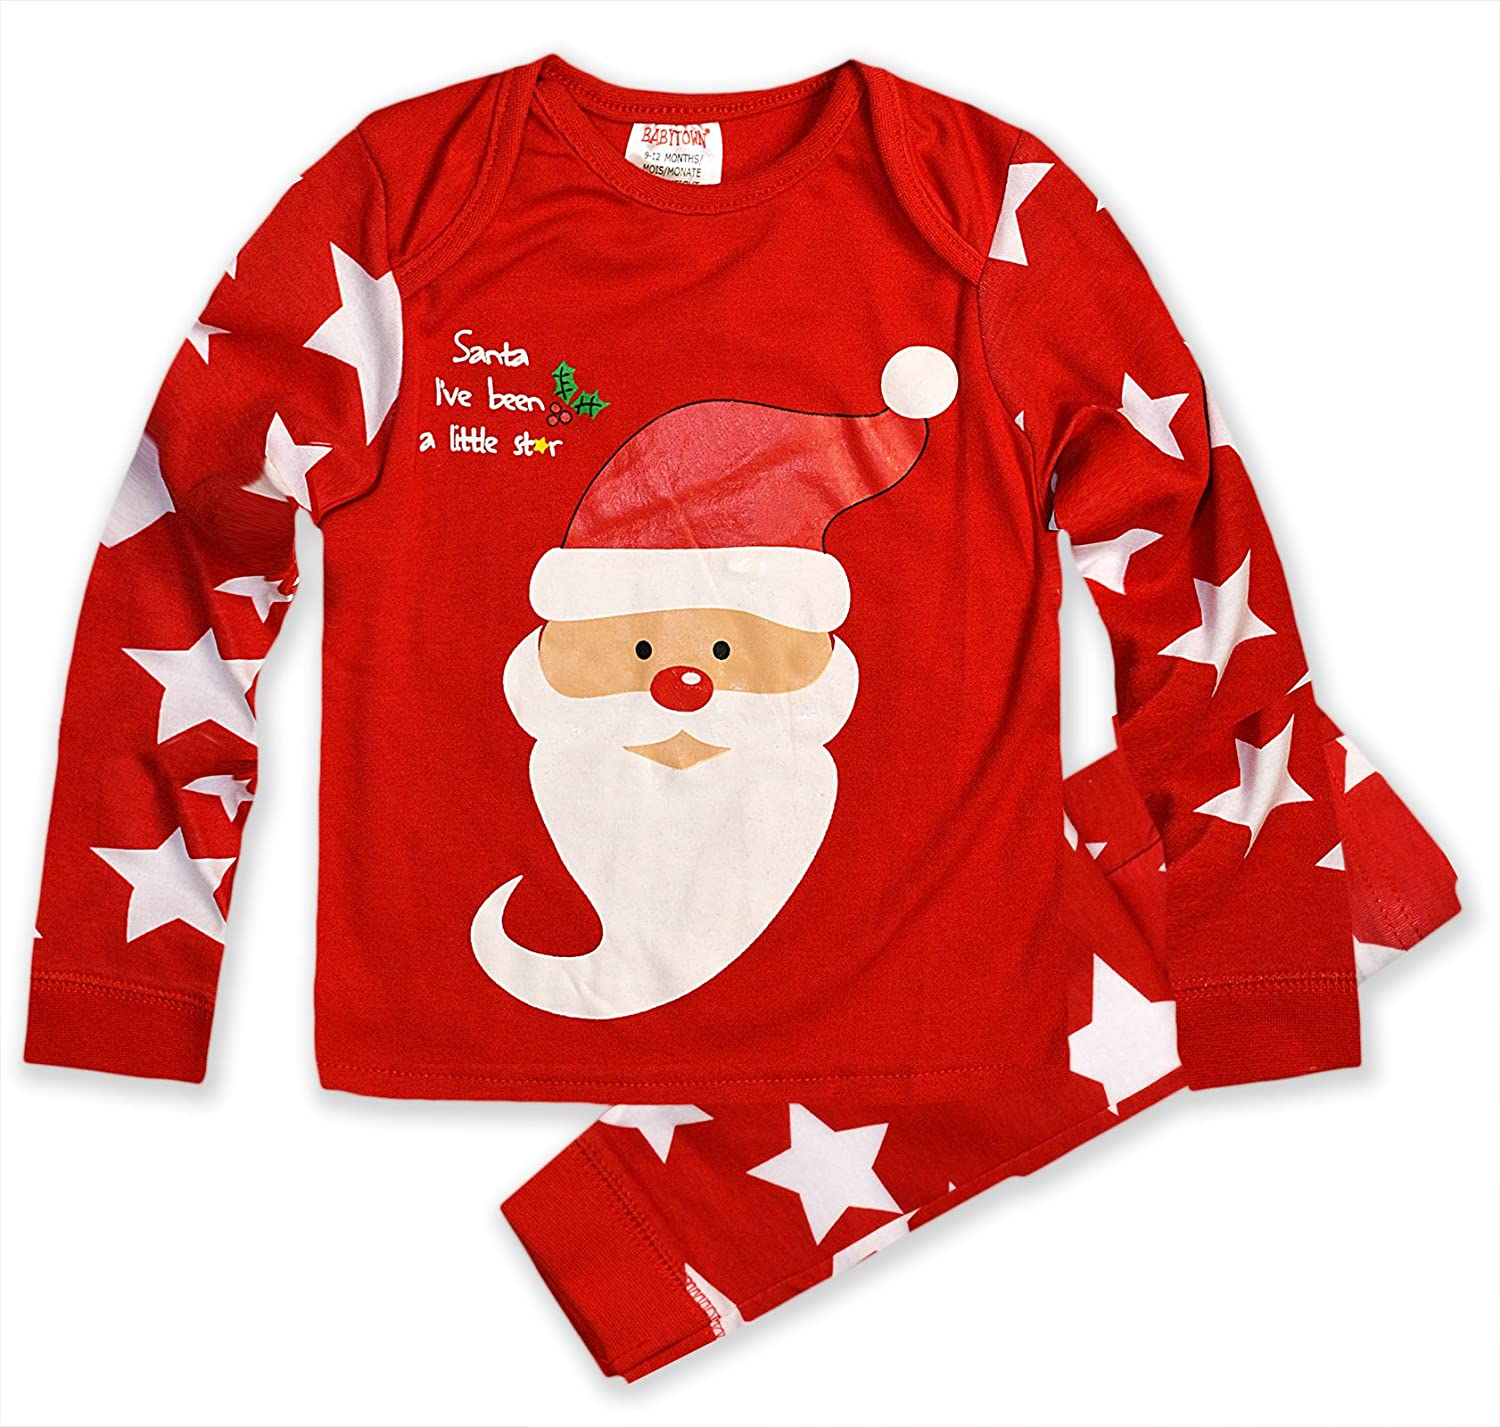 amazoncom babies christmas pajamas baby boys girls santa rudolph sleepwear set clothing